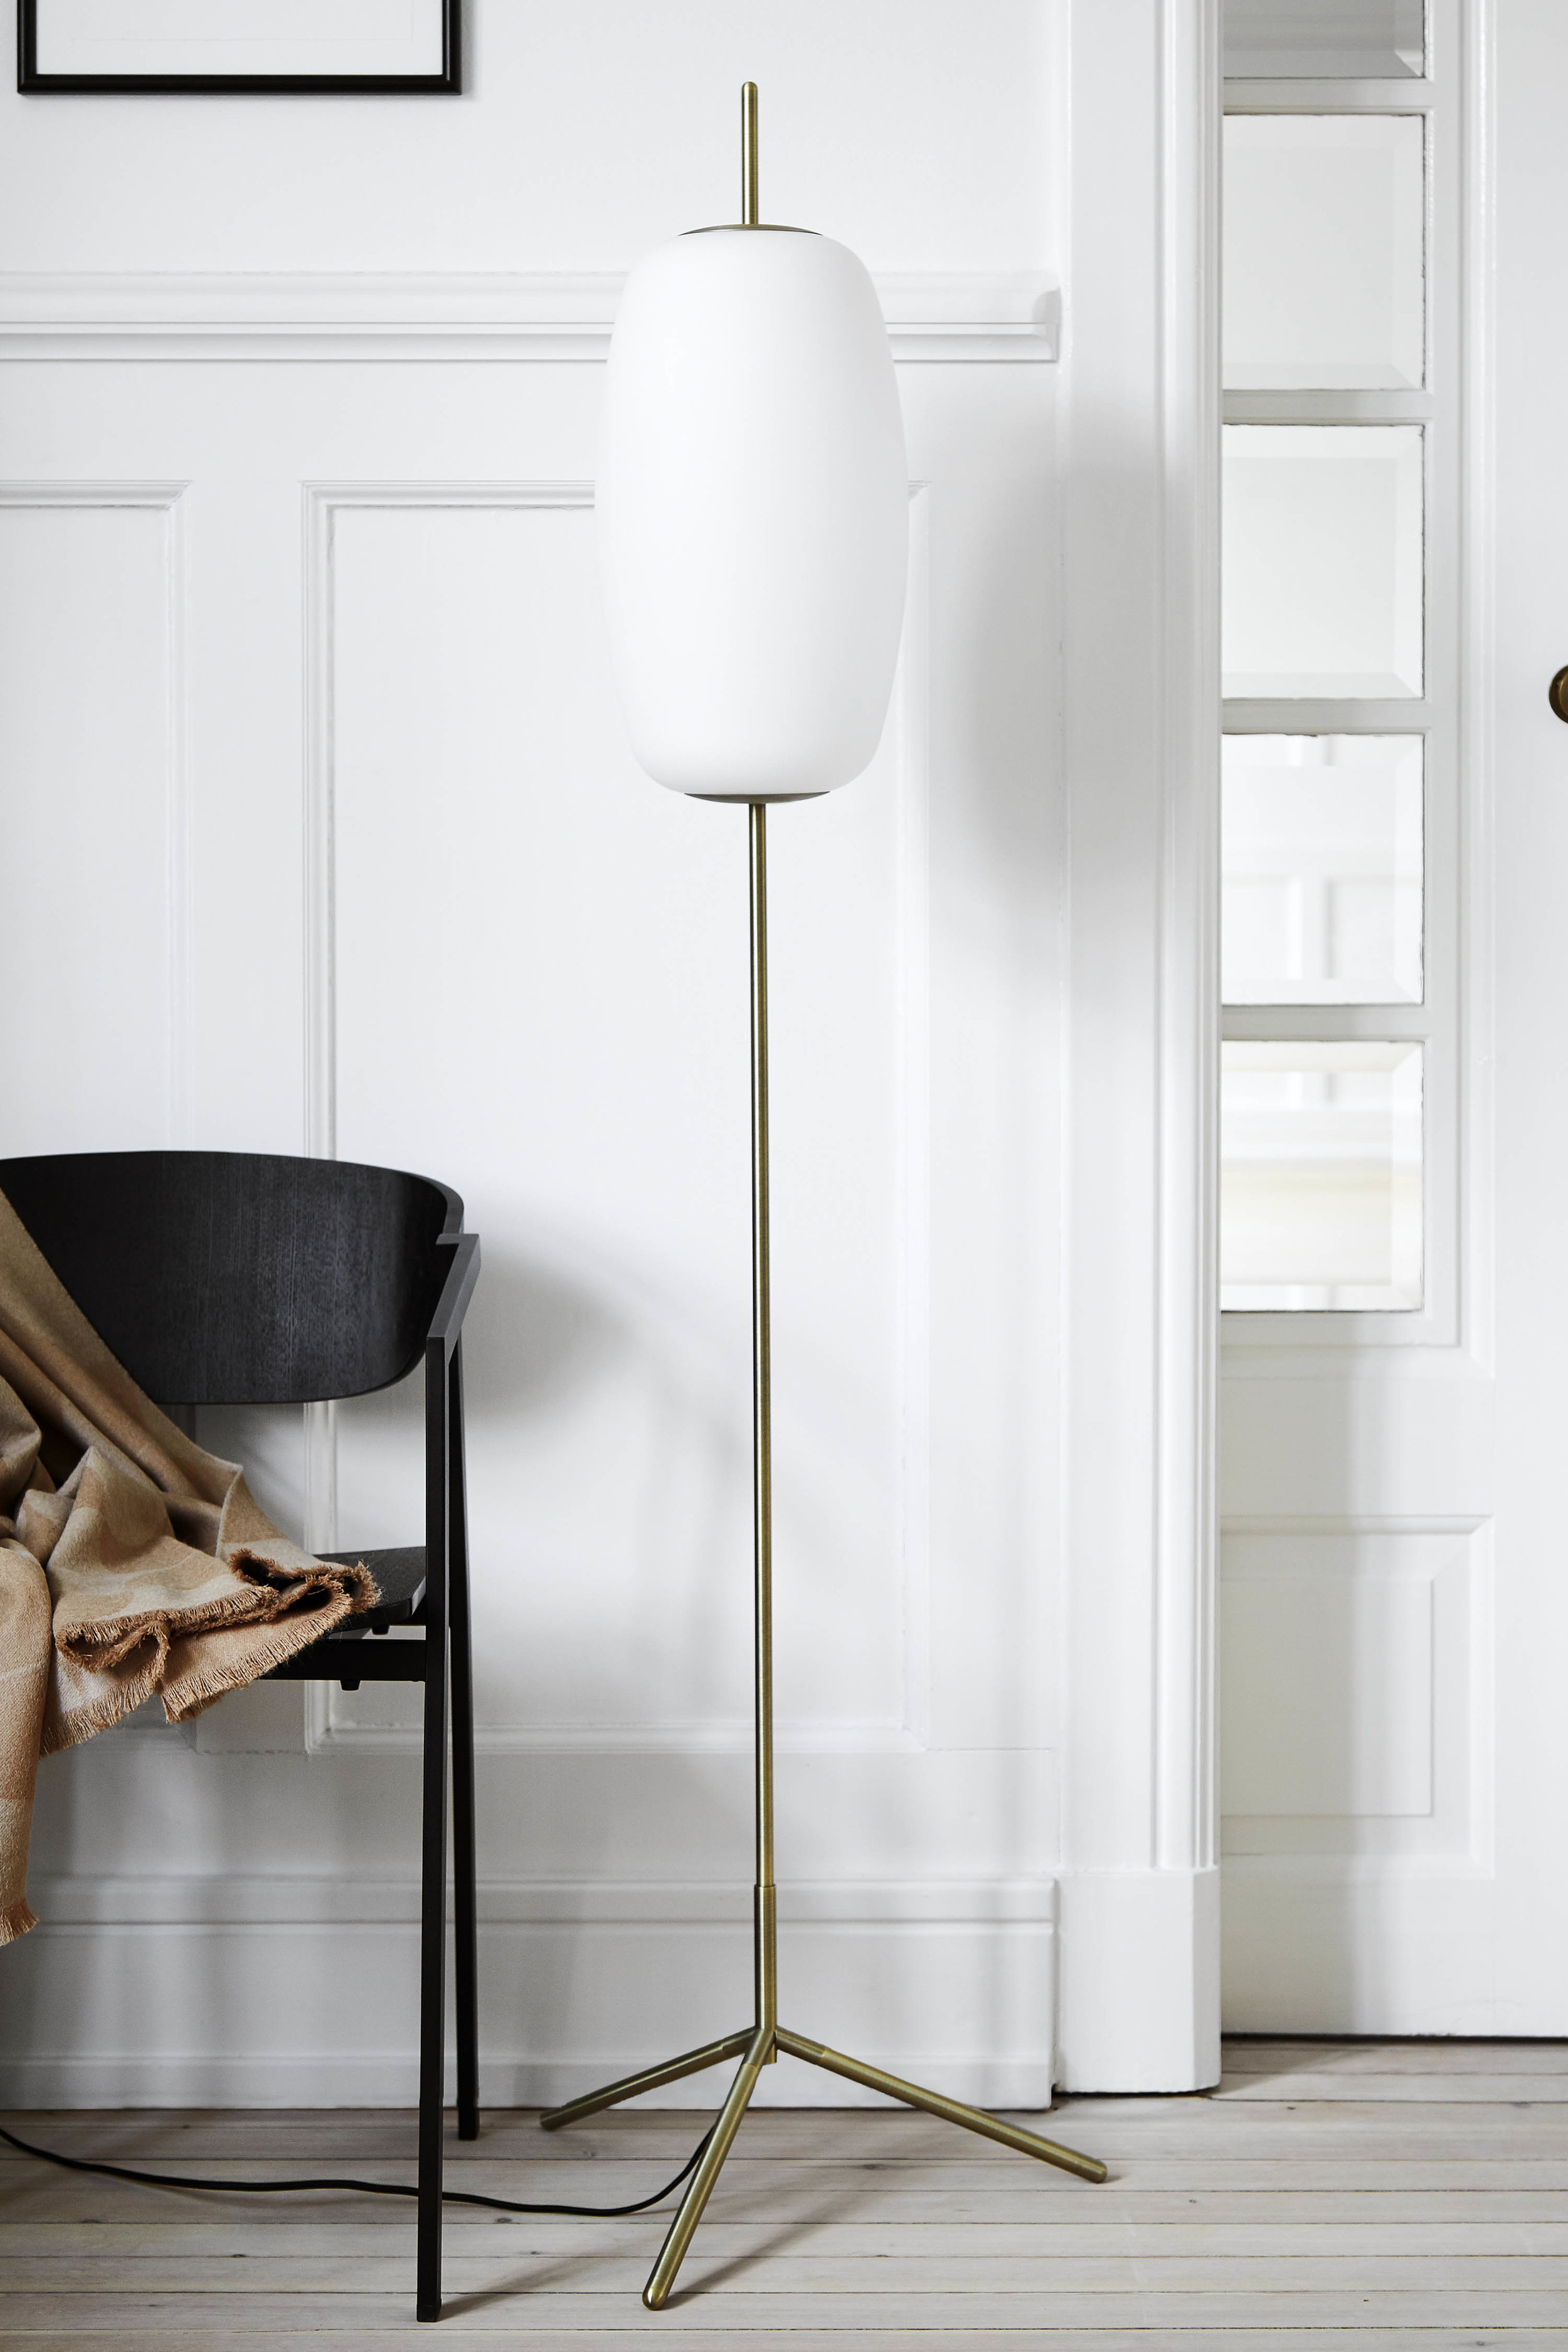 Silk floor lamp opal white glass antique brass - lifestyle Teglgårdsvej 3577.jpg